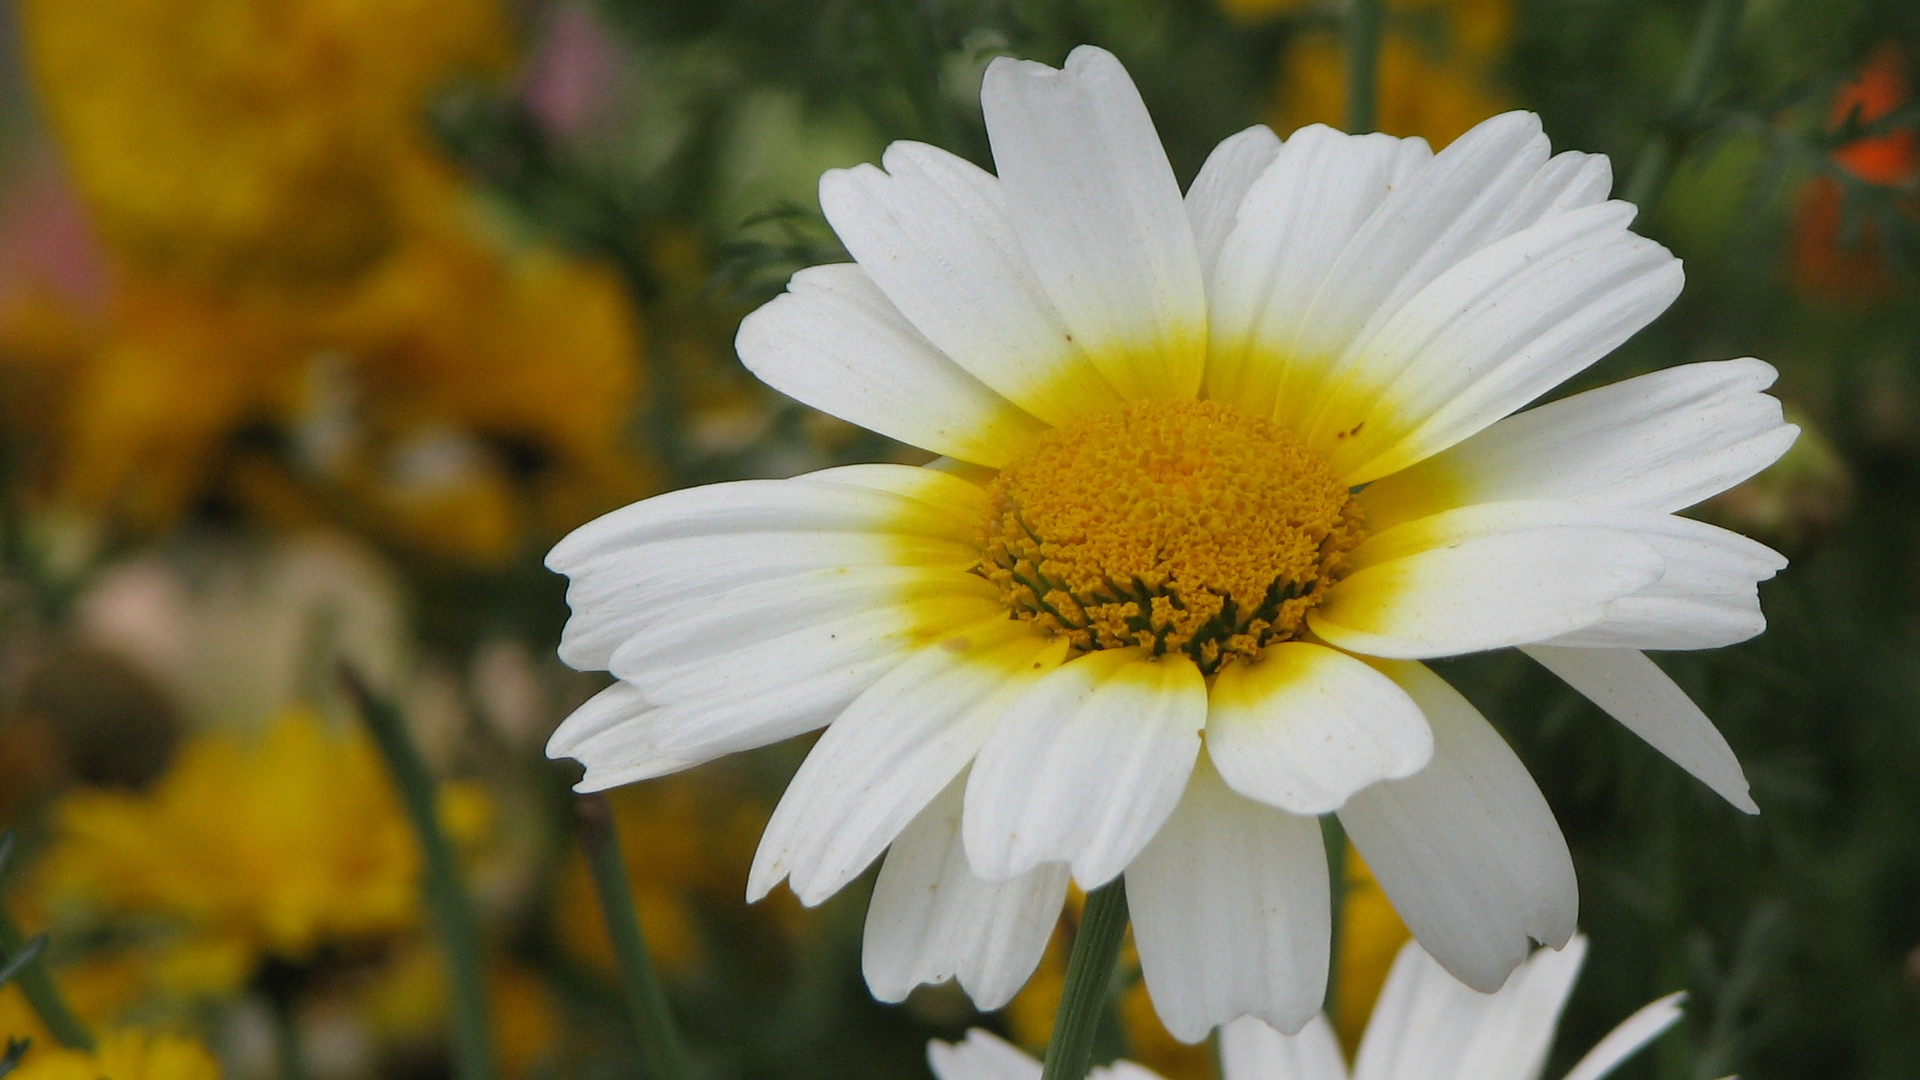 Daisy, White, Yellow, Photography, Nature, Albums wallpaper